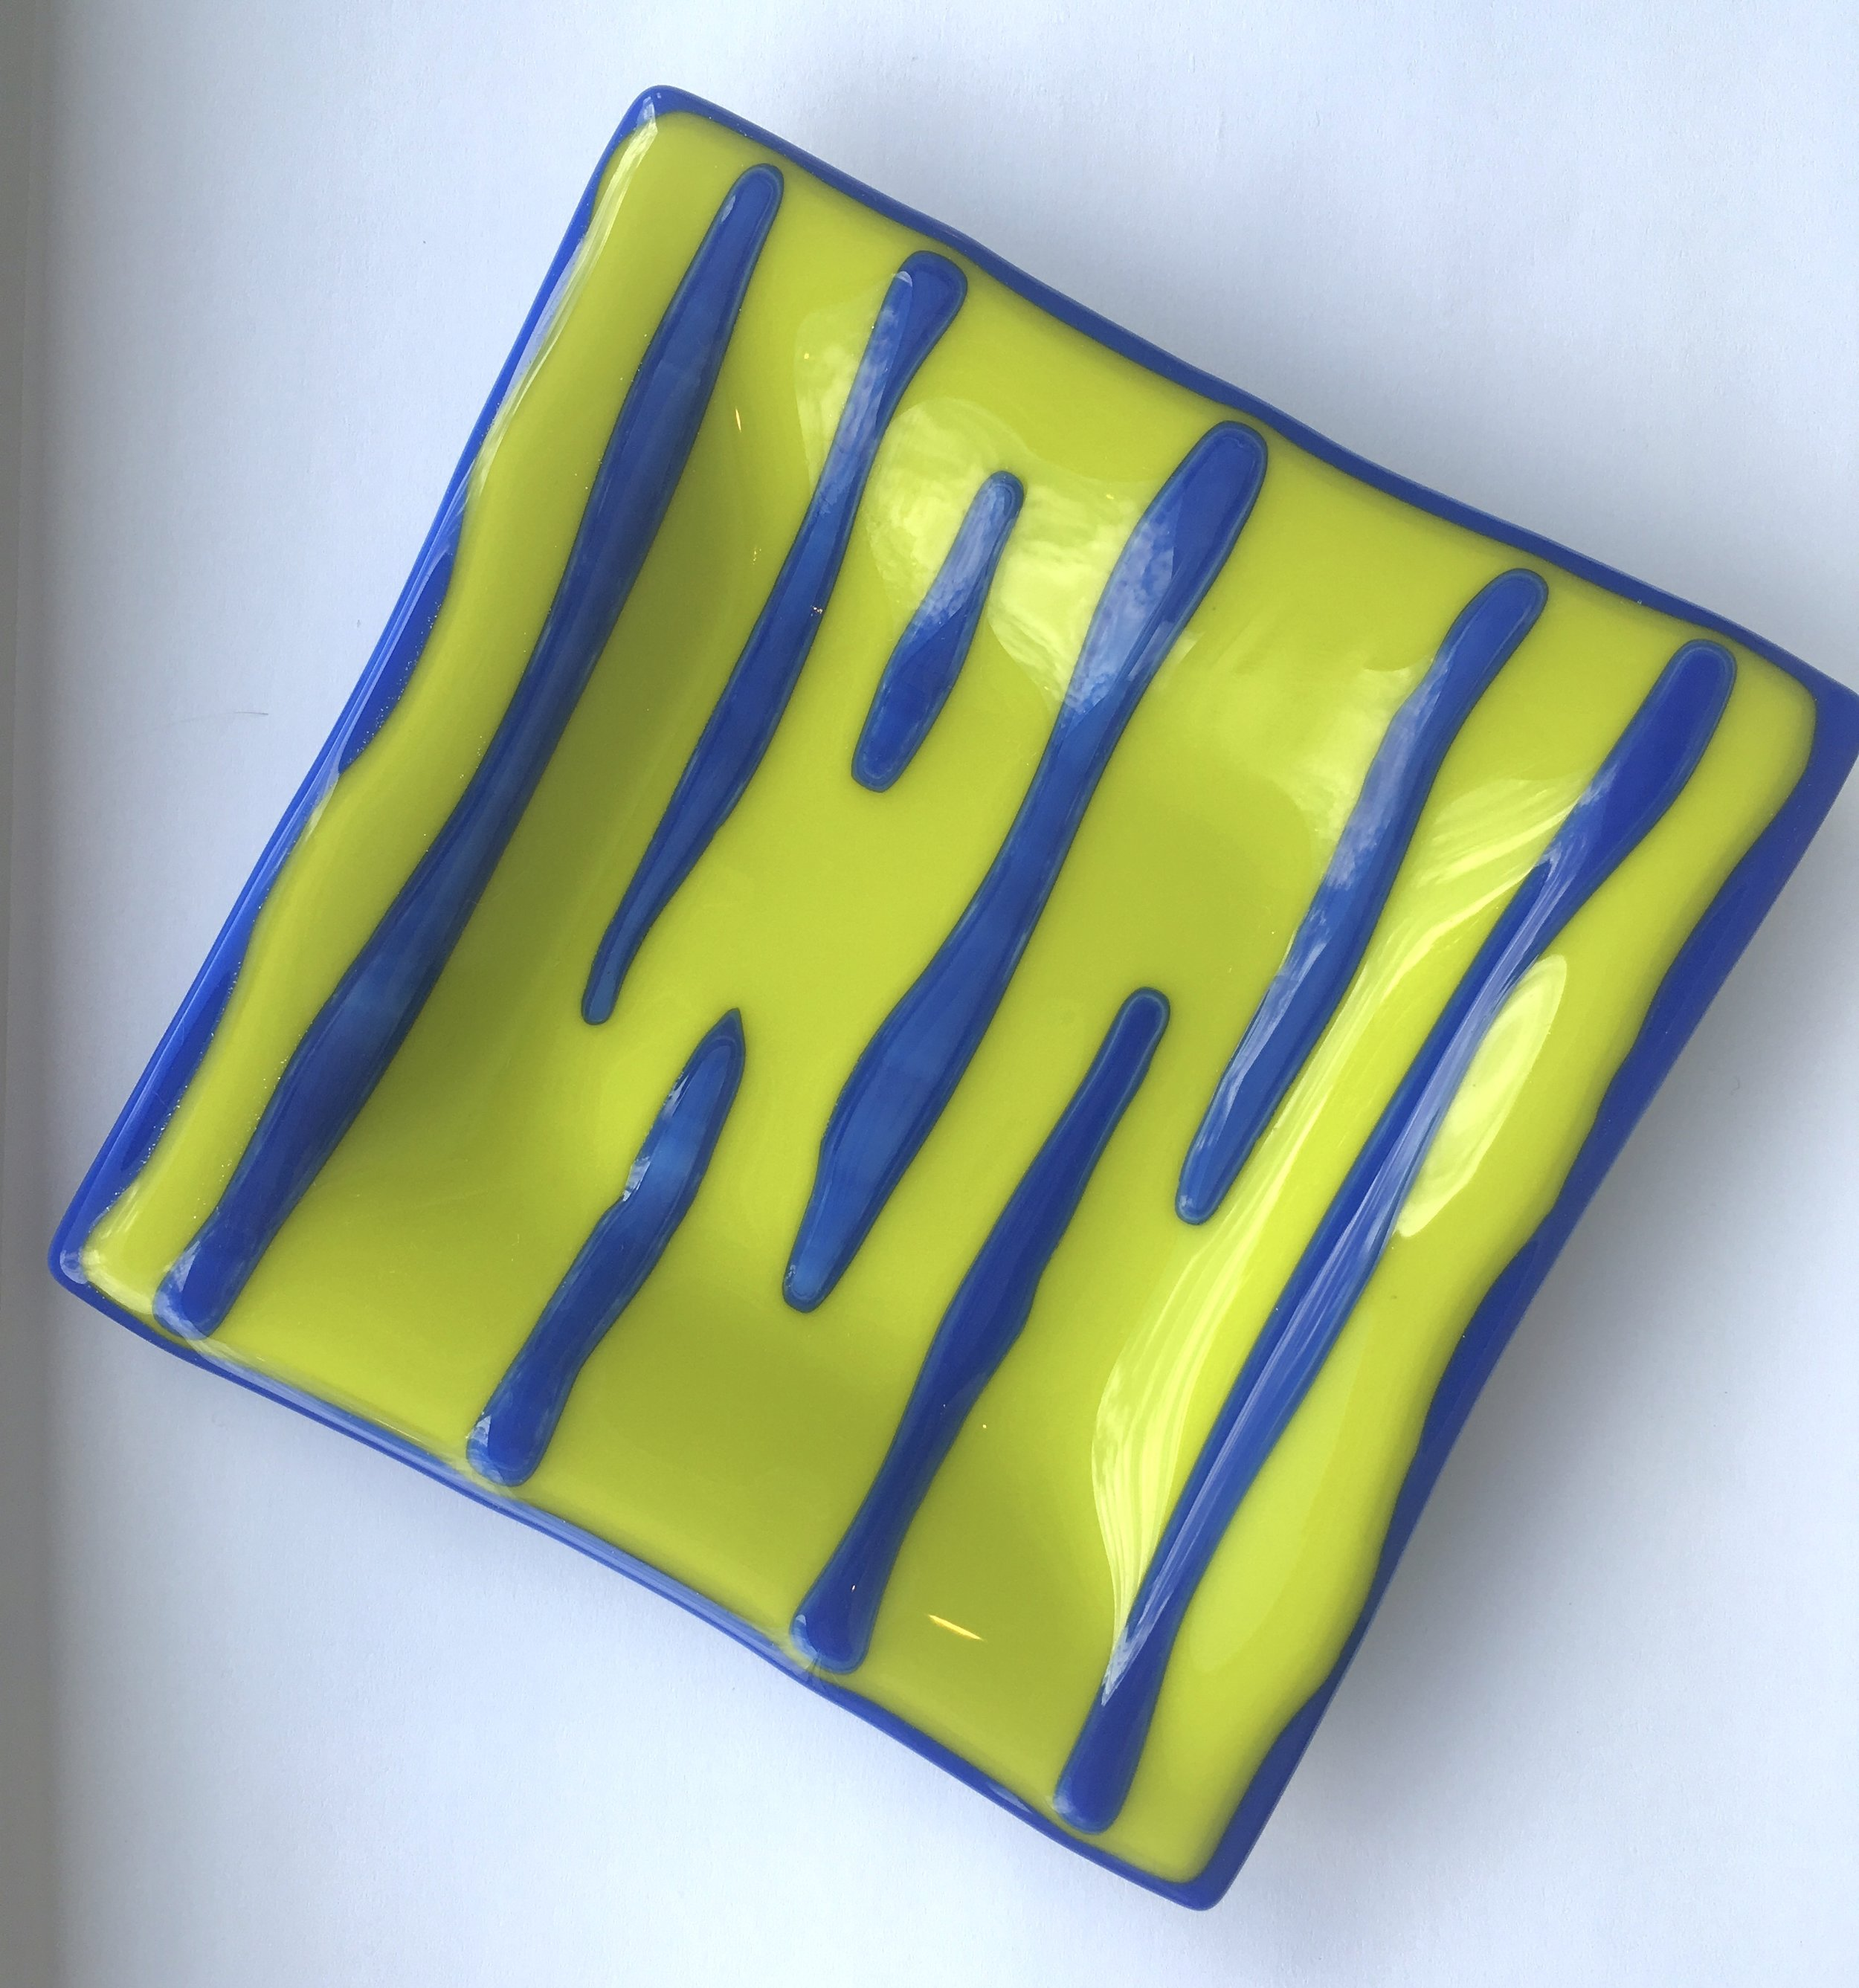 This lovely colour is called Lemongrass, teamed up here with a subtle patterned glass which mixes cobalt blue and soft white on a blue base.  BTW, the edges are wavy on purpose to show more of the blue colour and just for fun!